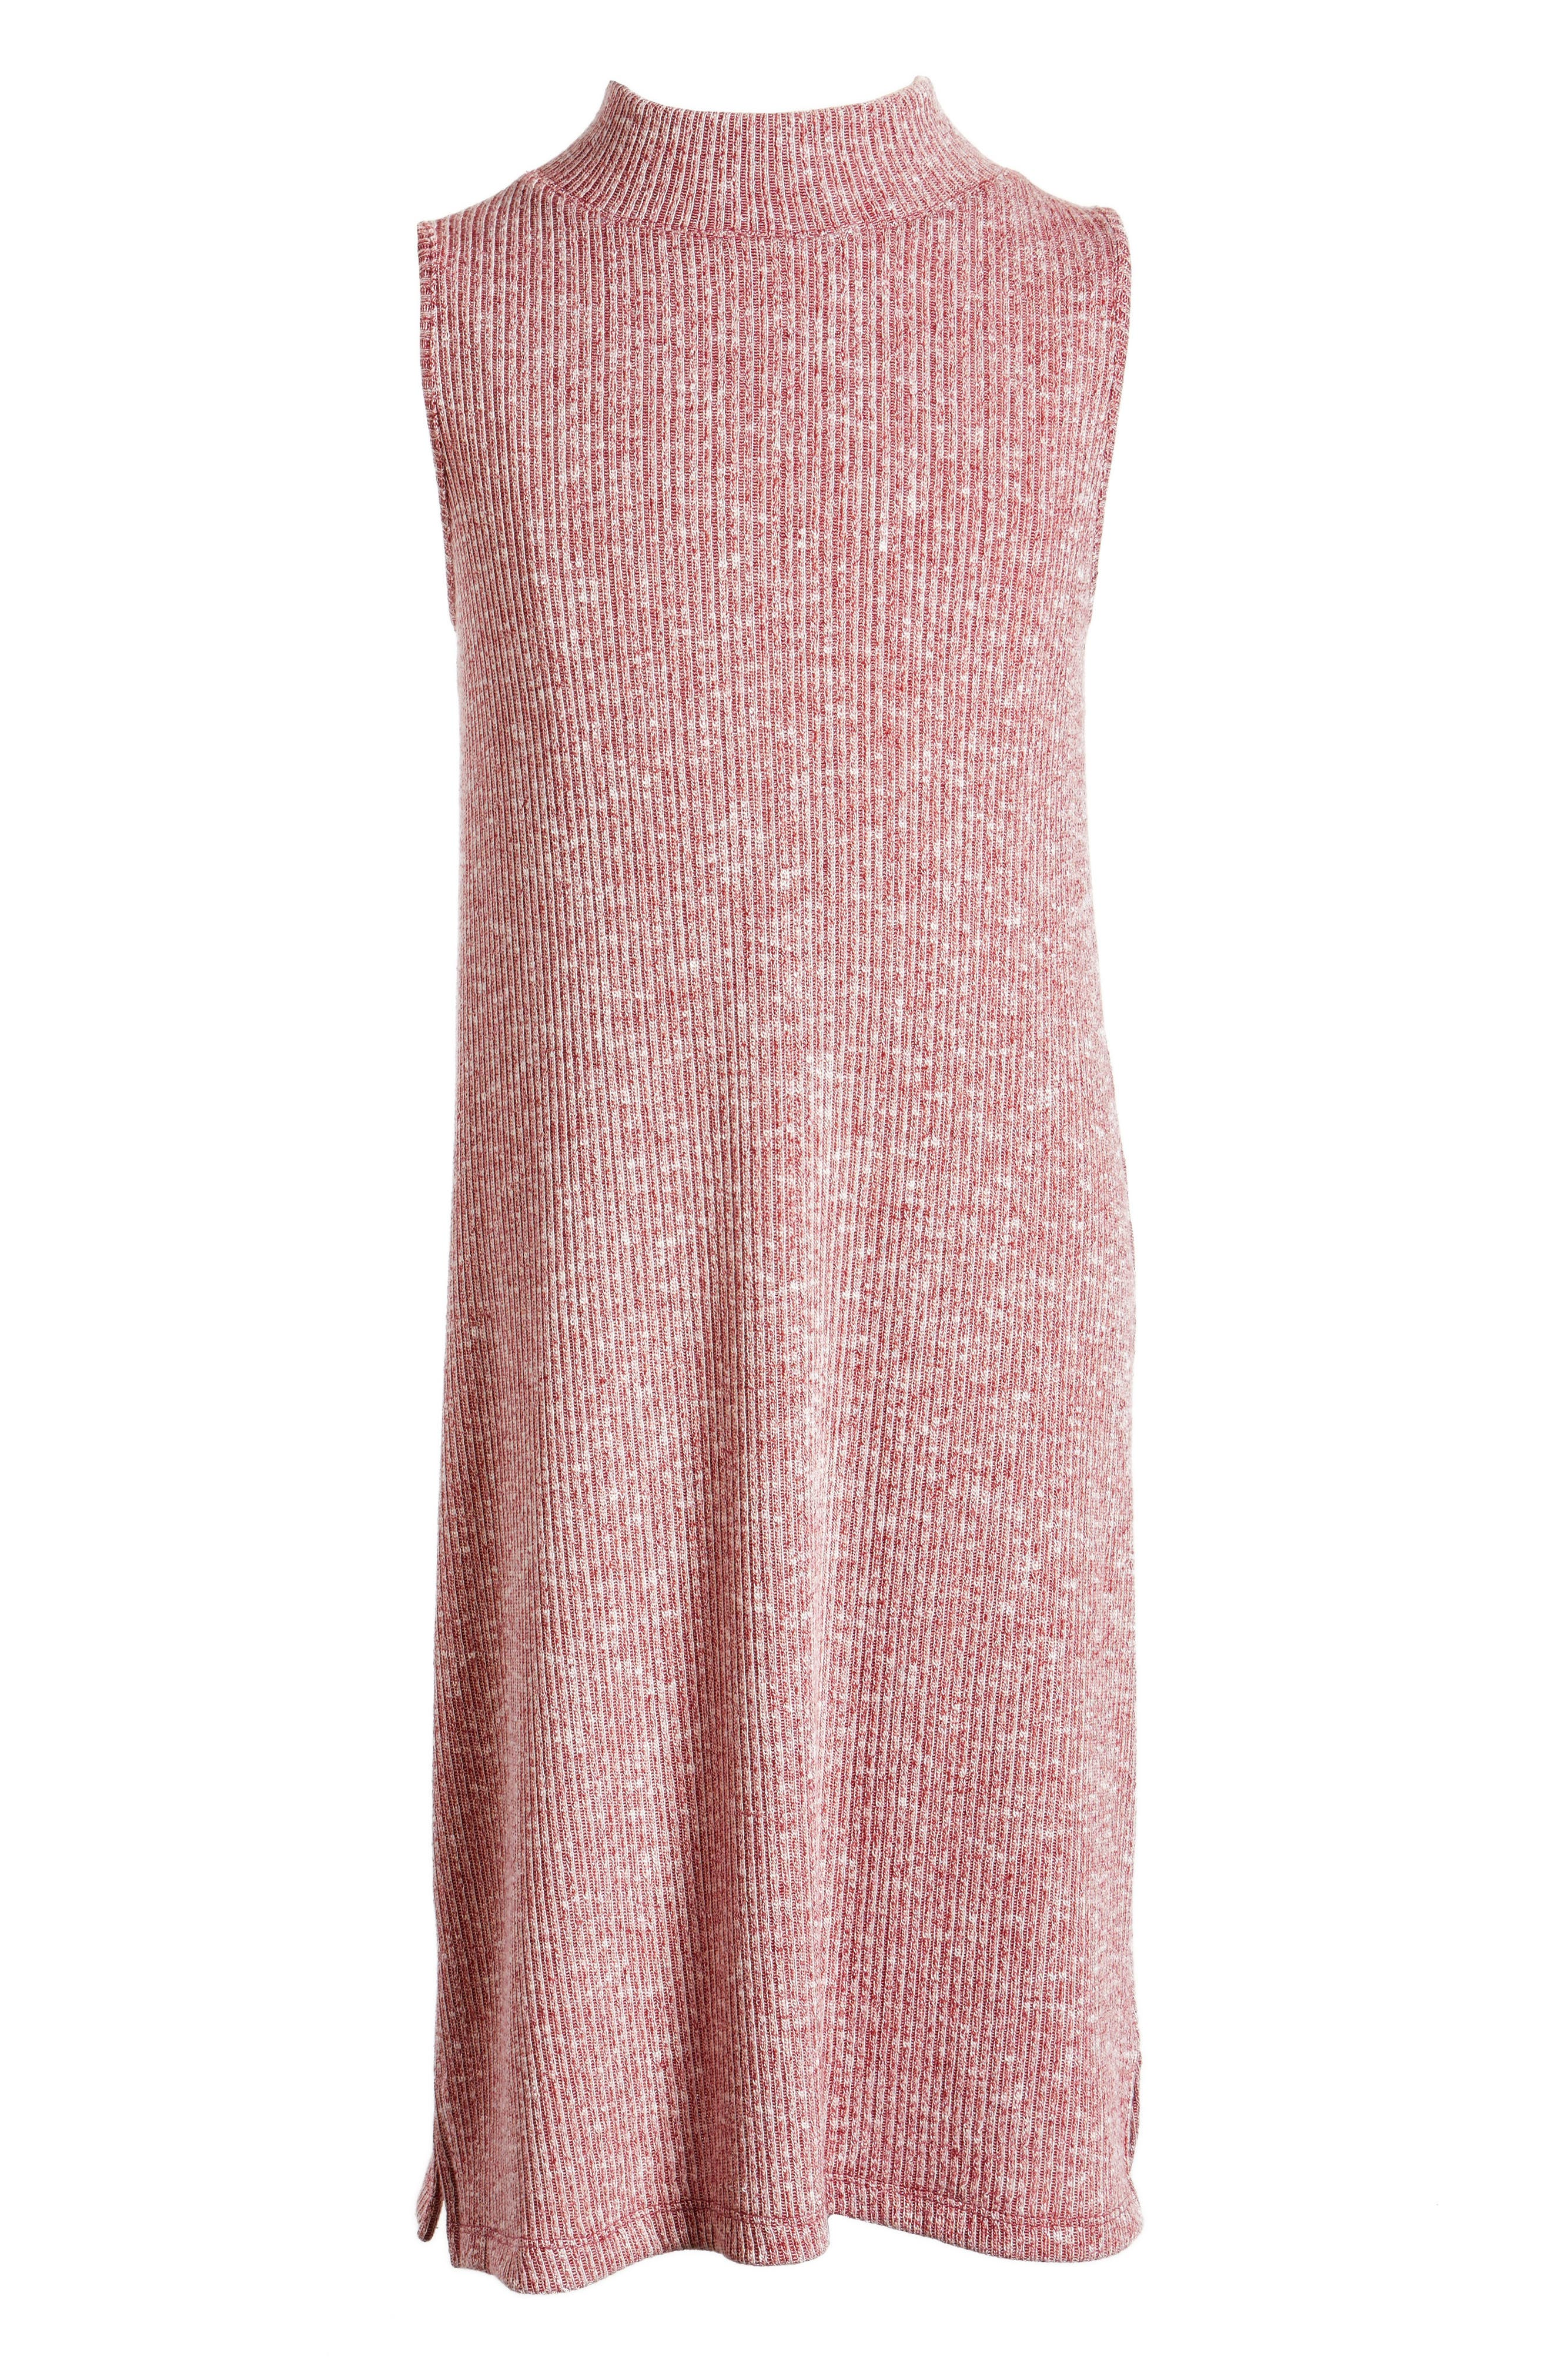 Cotton Emporium Sleeveless Mock Neck Dress (Big Girls)